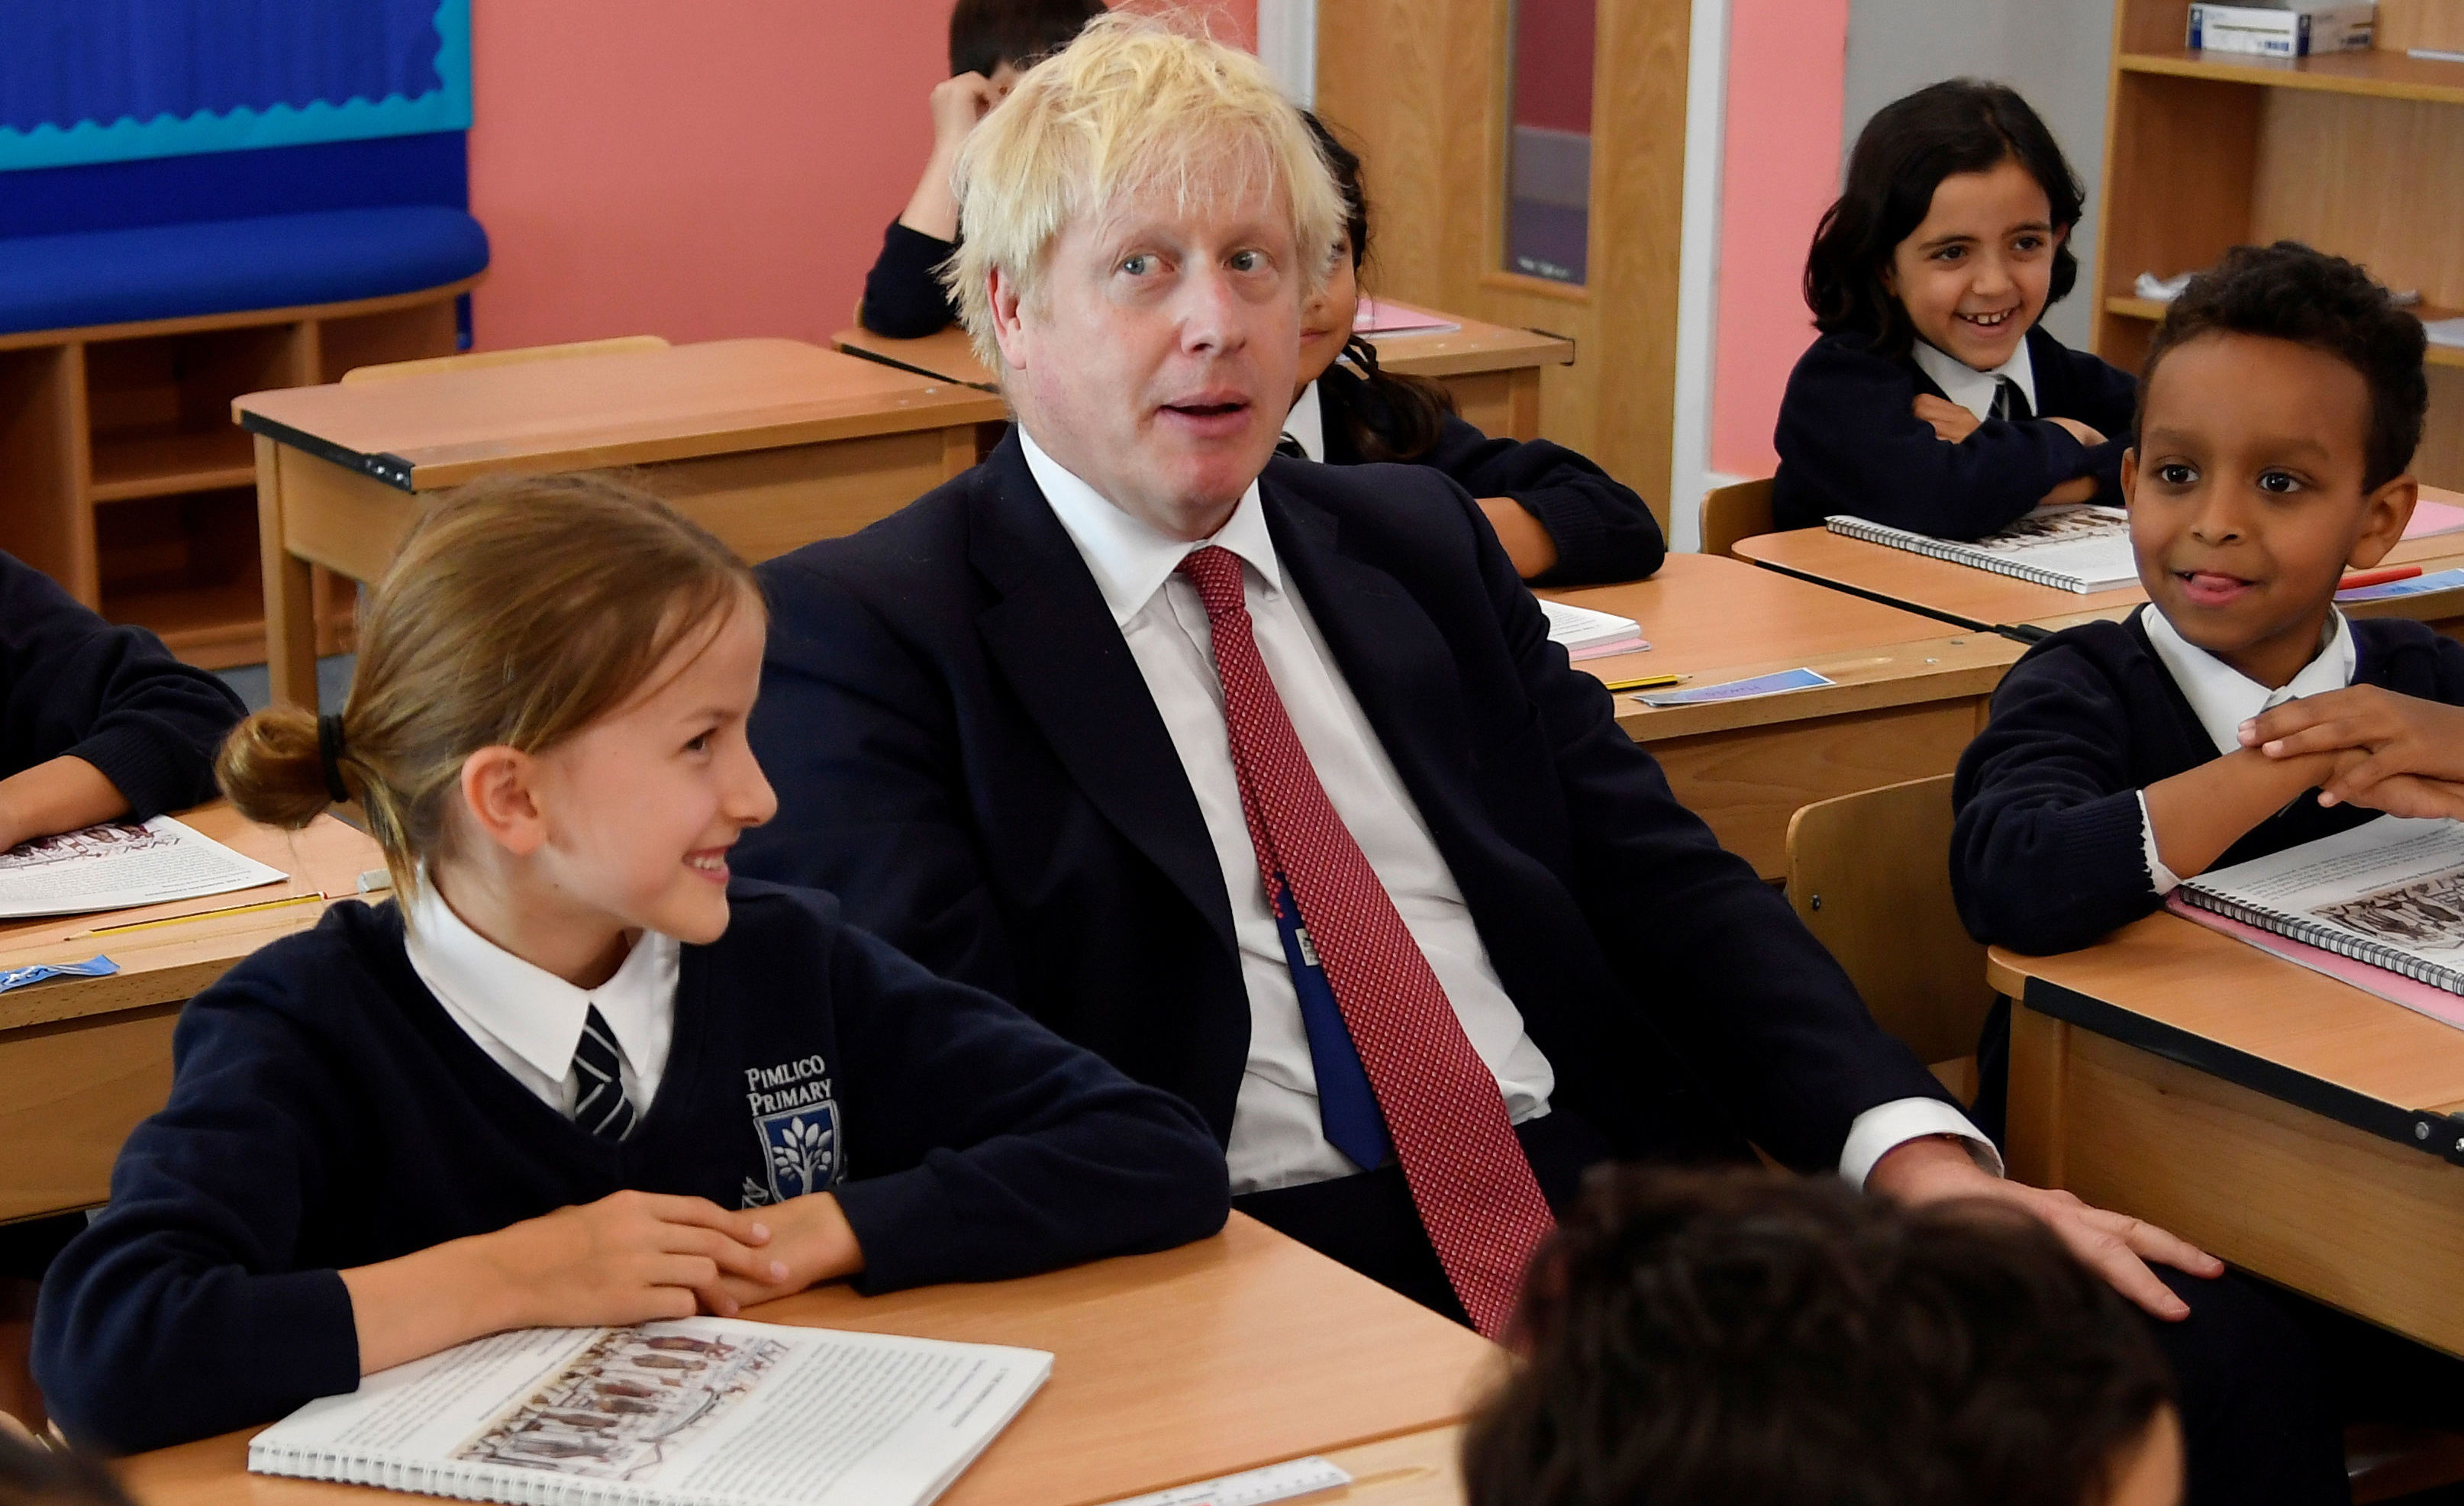 Britain's Prime Minister Boris Johnson attends a class during his visit to Pimlico Primary school in London on September 10, 2019